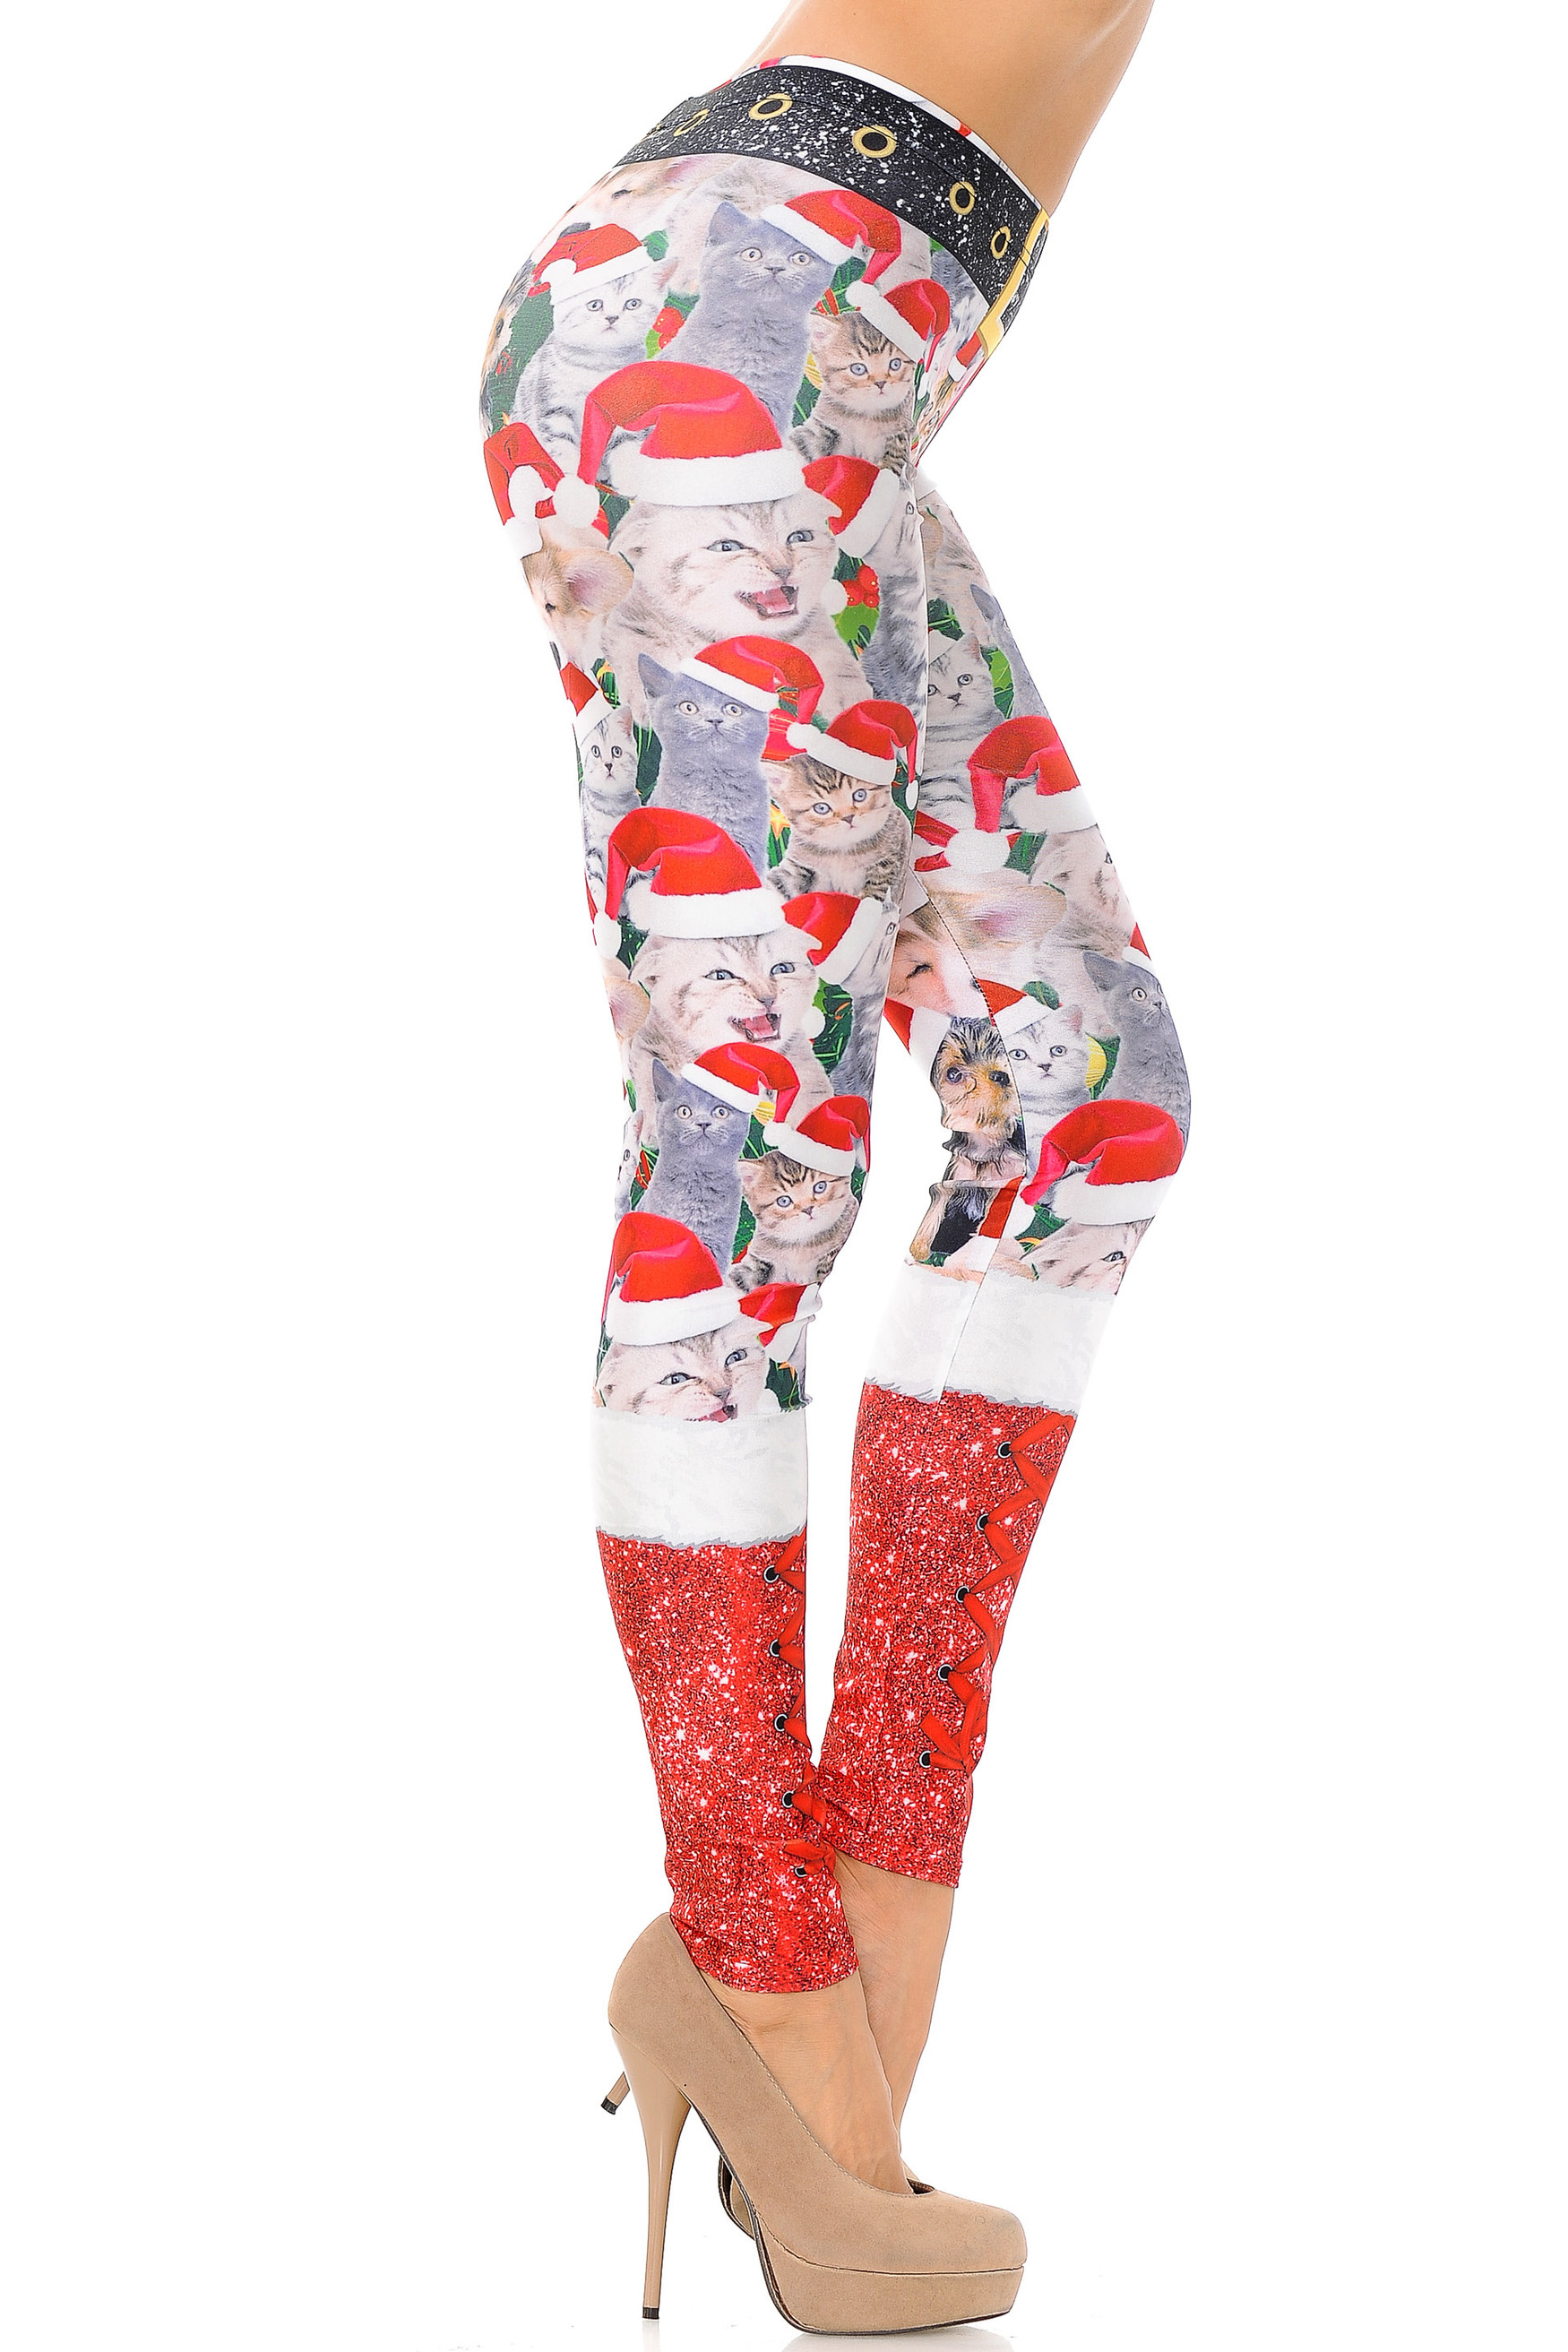 Jolly Christmas Cats and Dogs Leggings - Plus Size